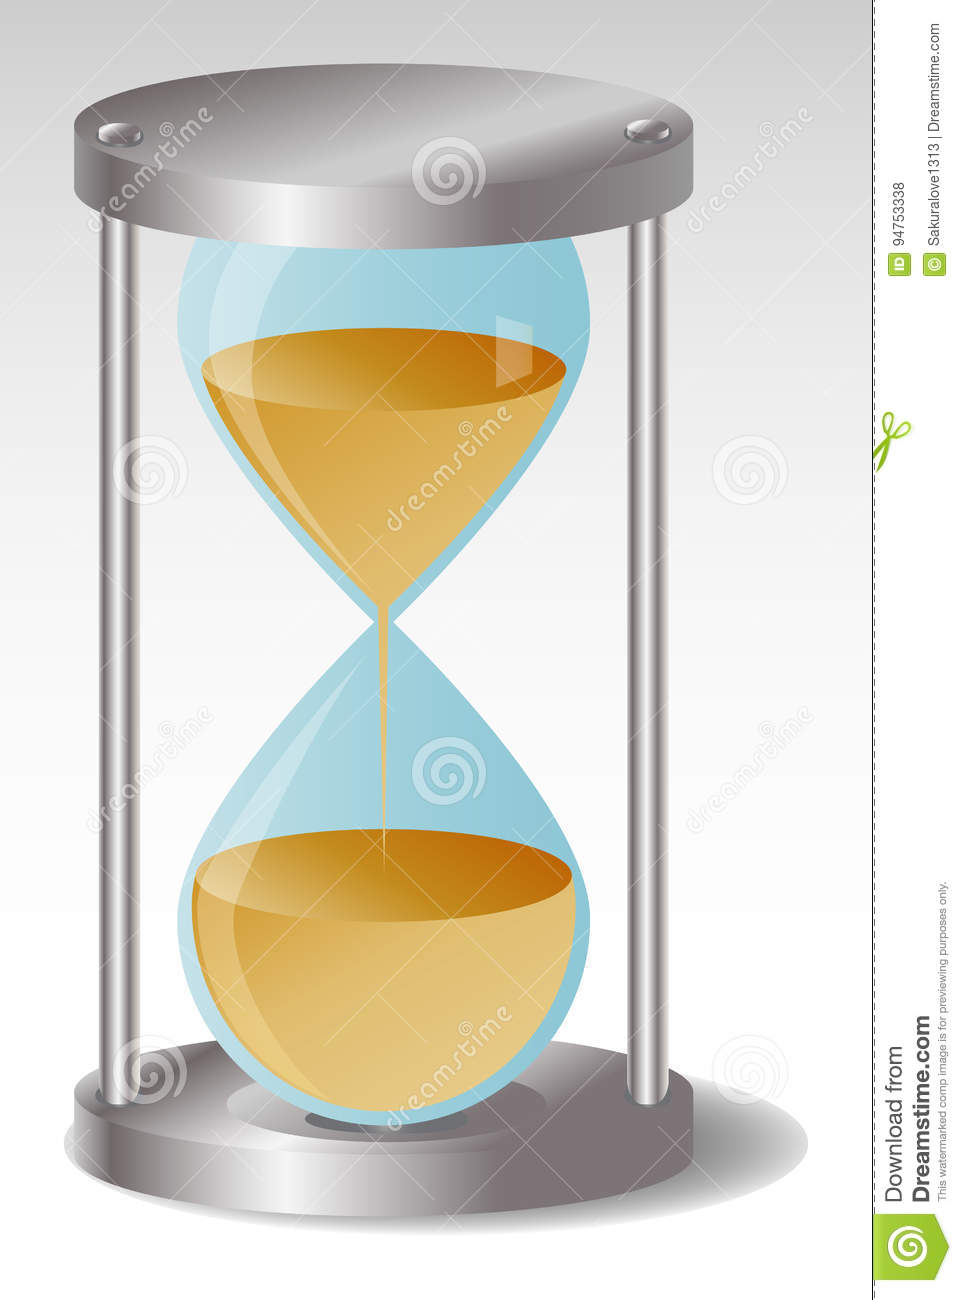 Glass Hourglass with metal hats, leaking sand